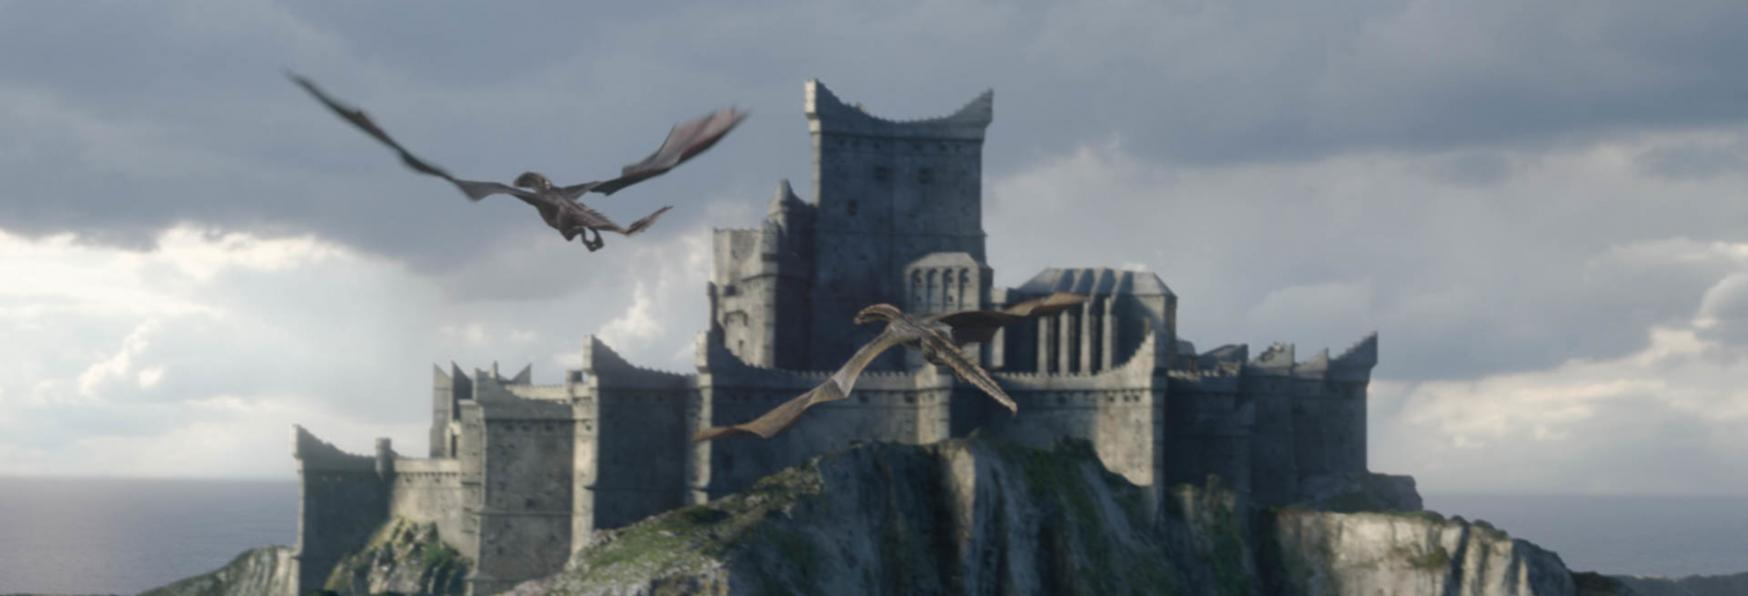 House of the Dragon: Jason Kilar parla dell'atteso Spin-off di Game of Thrones